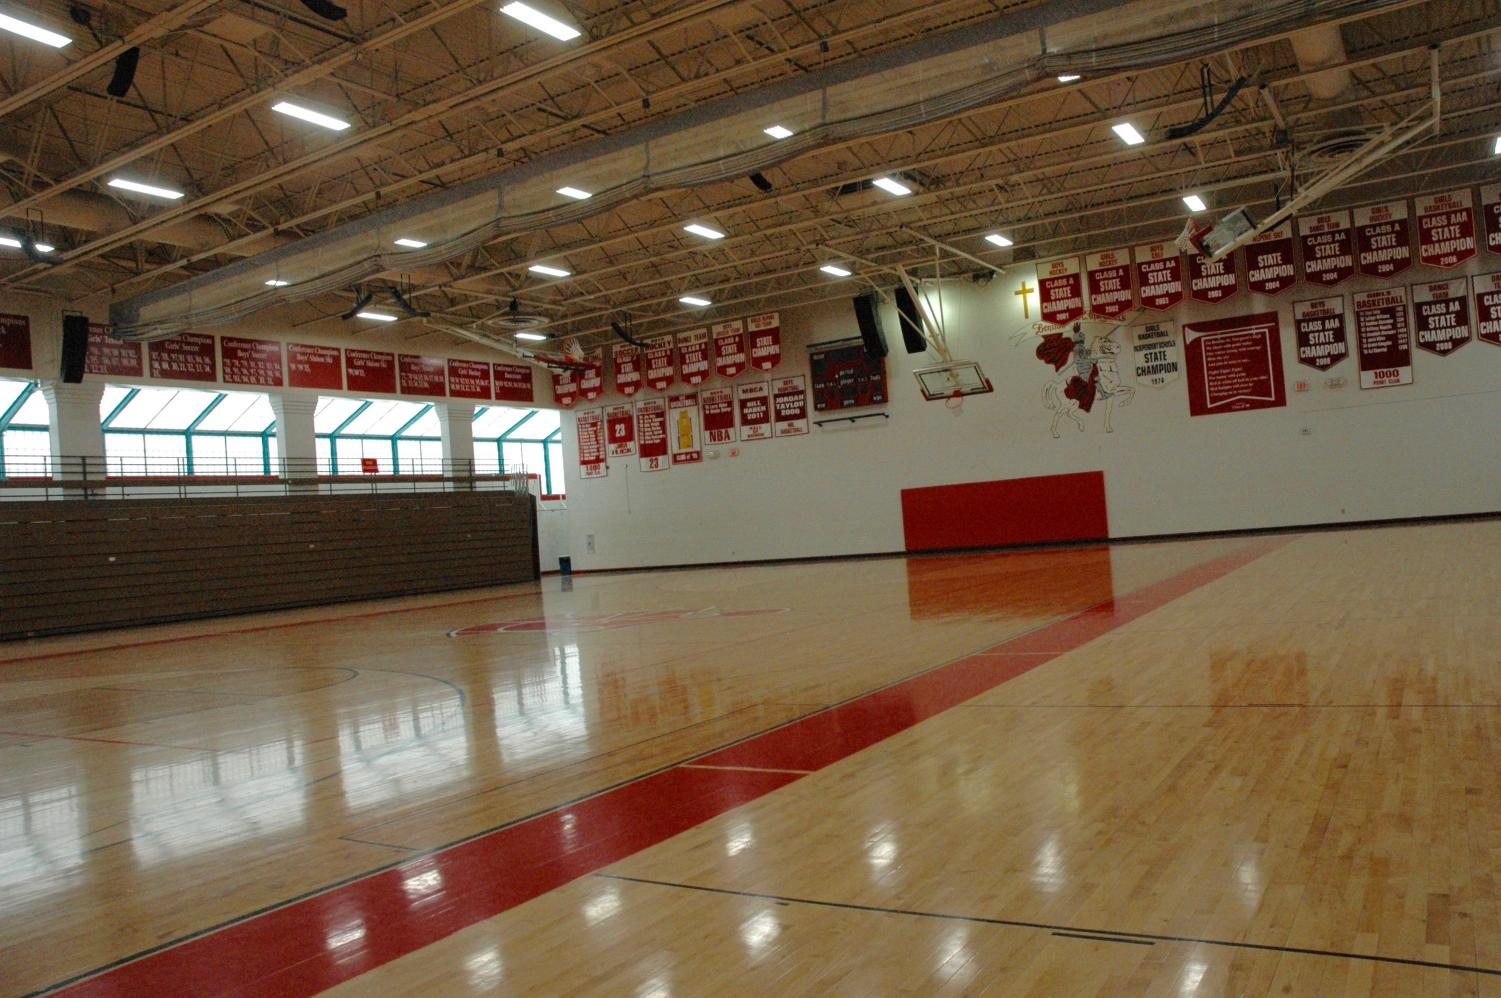 The Haben Center was pretty empty this week as not enough teams showed up to actually have games take place.